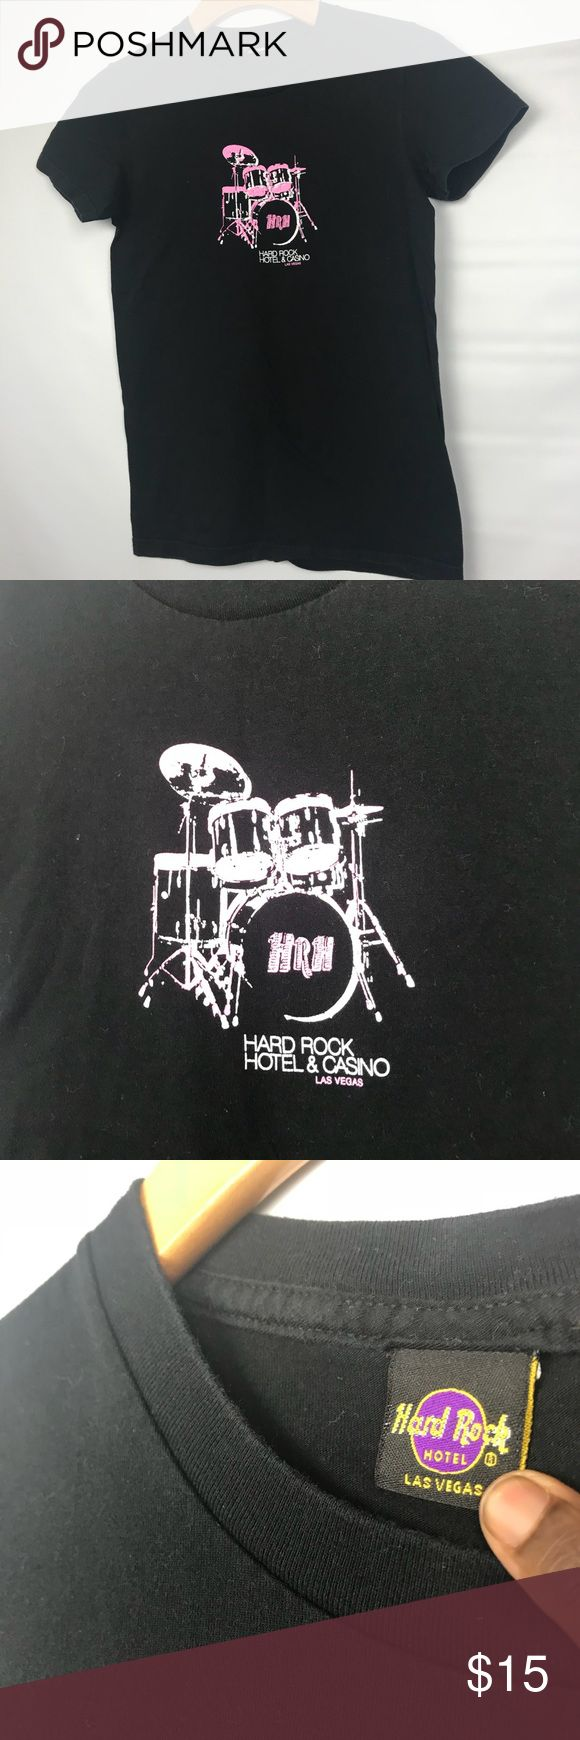 """HARD ROCK HOTEL Vegas Black T-shirt Size Small Hard Rock Hotel and Casino Vegas T-shirt Size Small Cotton Pit to pit 16"""" Length is 24"""" Please note that this is a used item. Normal fade from wash and wear.  #X Hard Rock Cafe Tops Tees - Short Sleeve"""